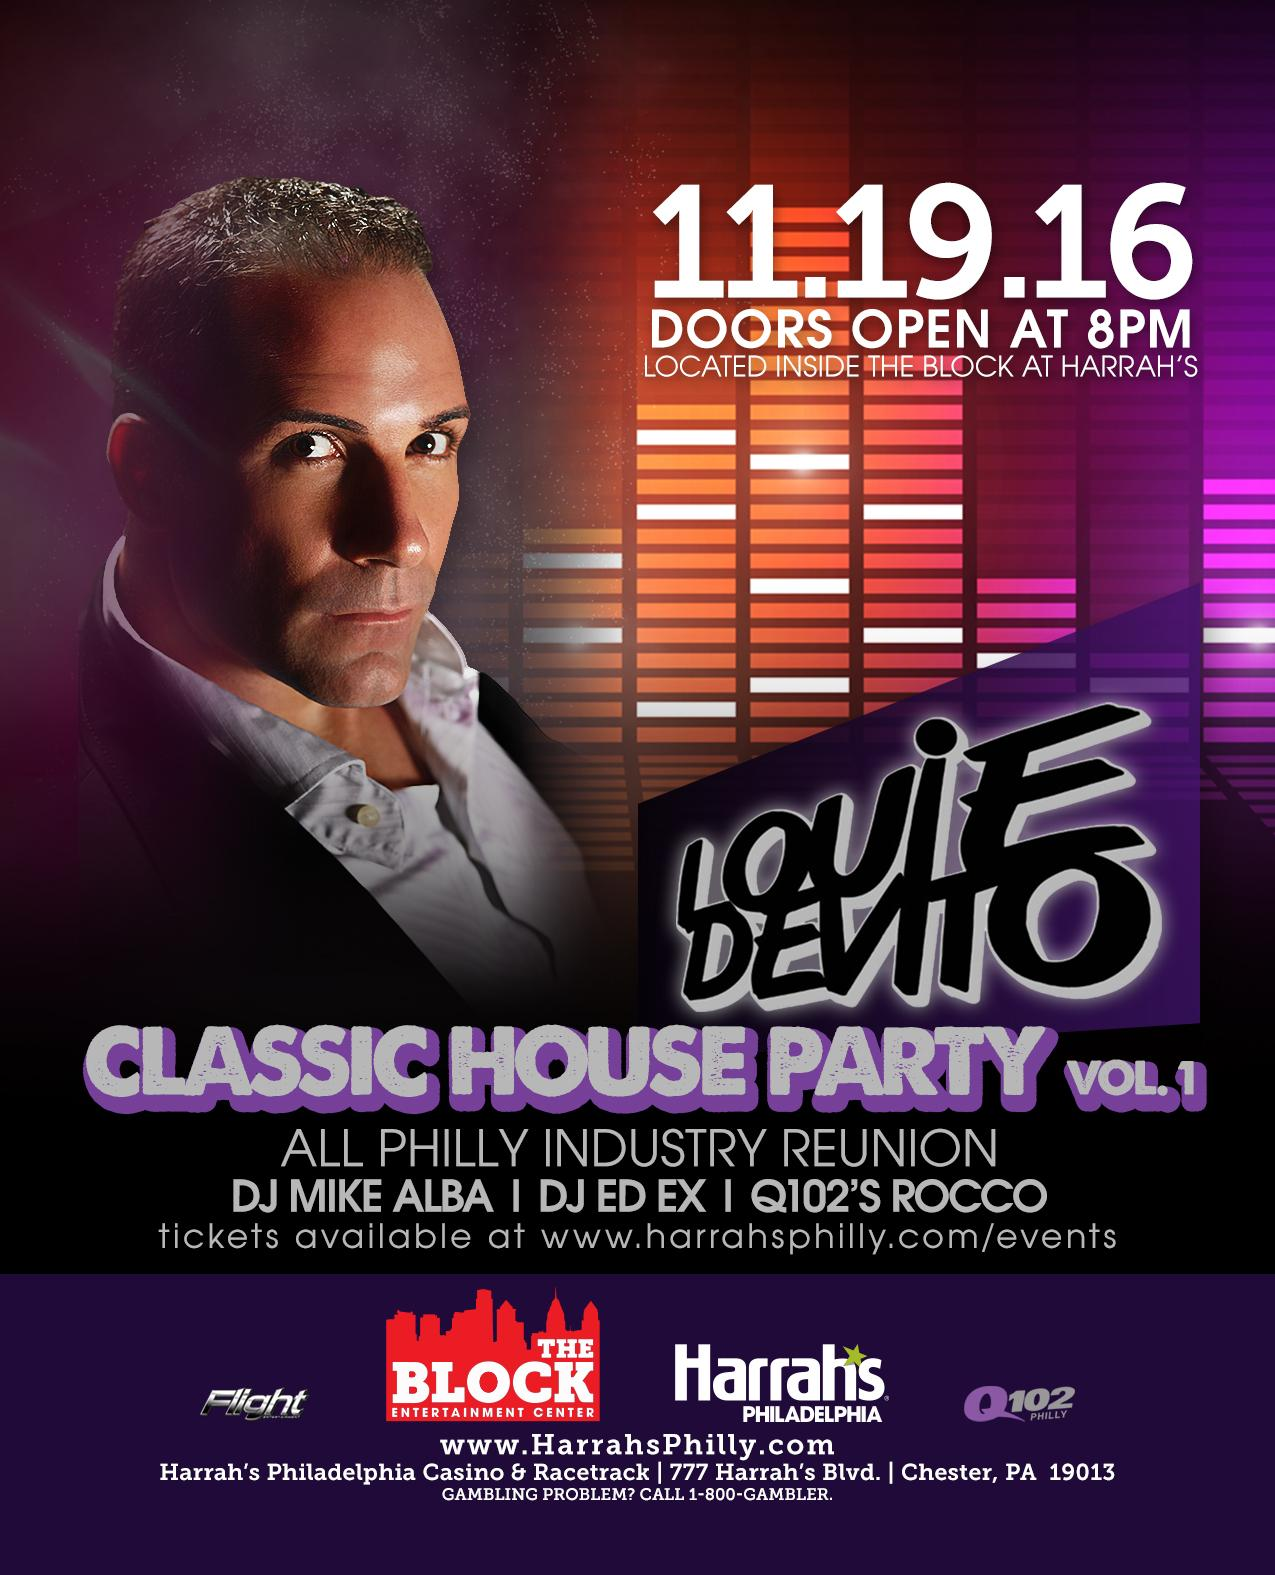 louie devito 39 s classic house party vol 1 tickets in